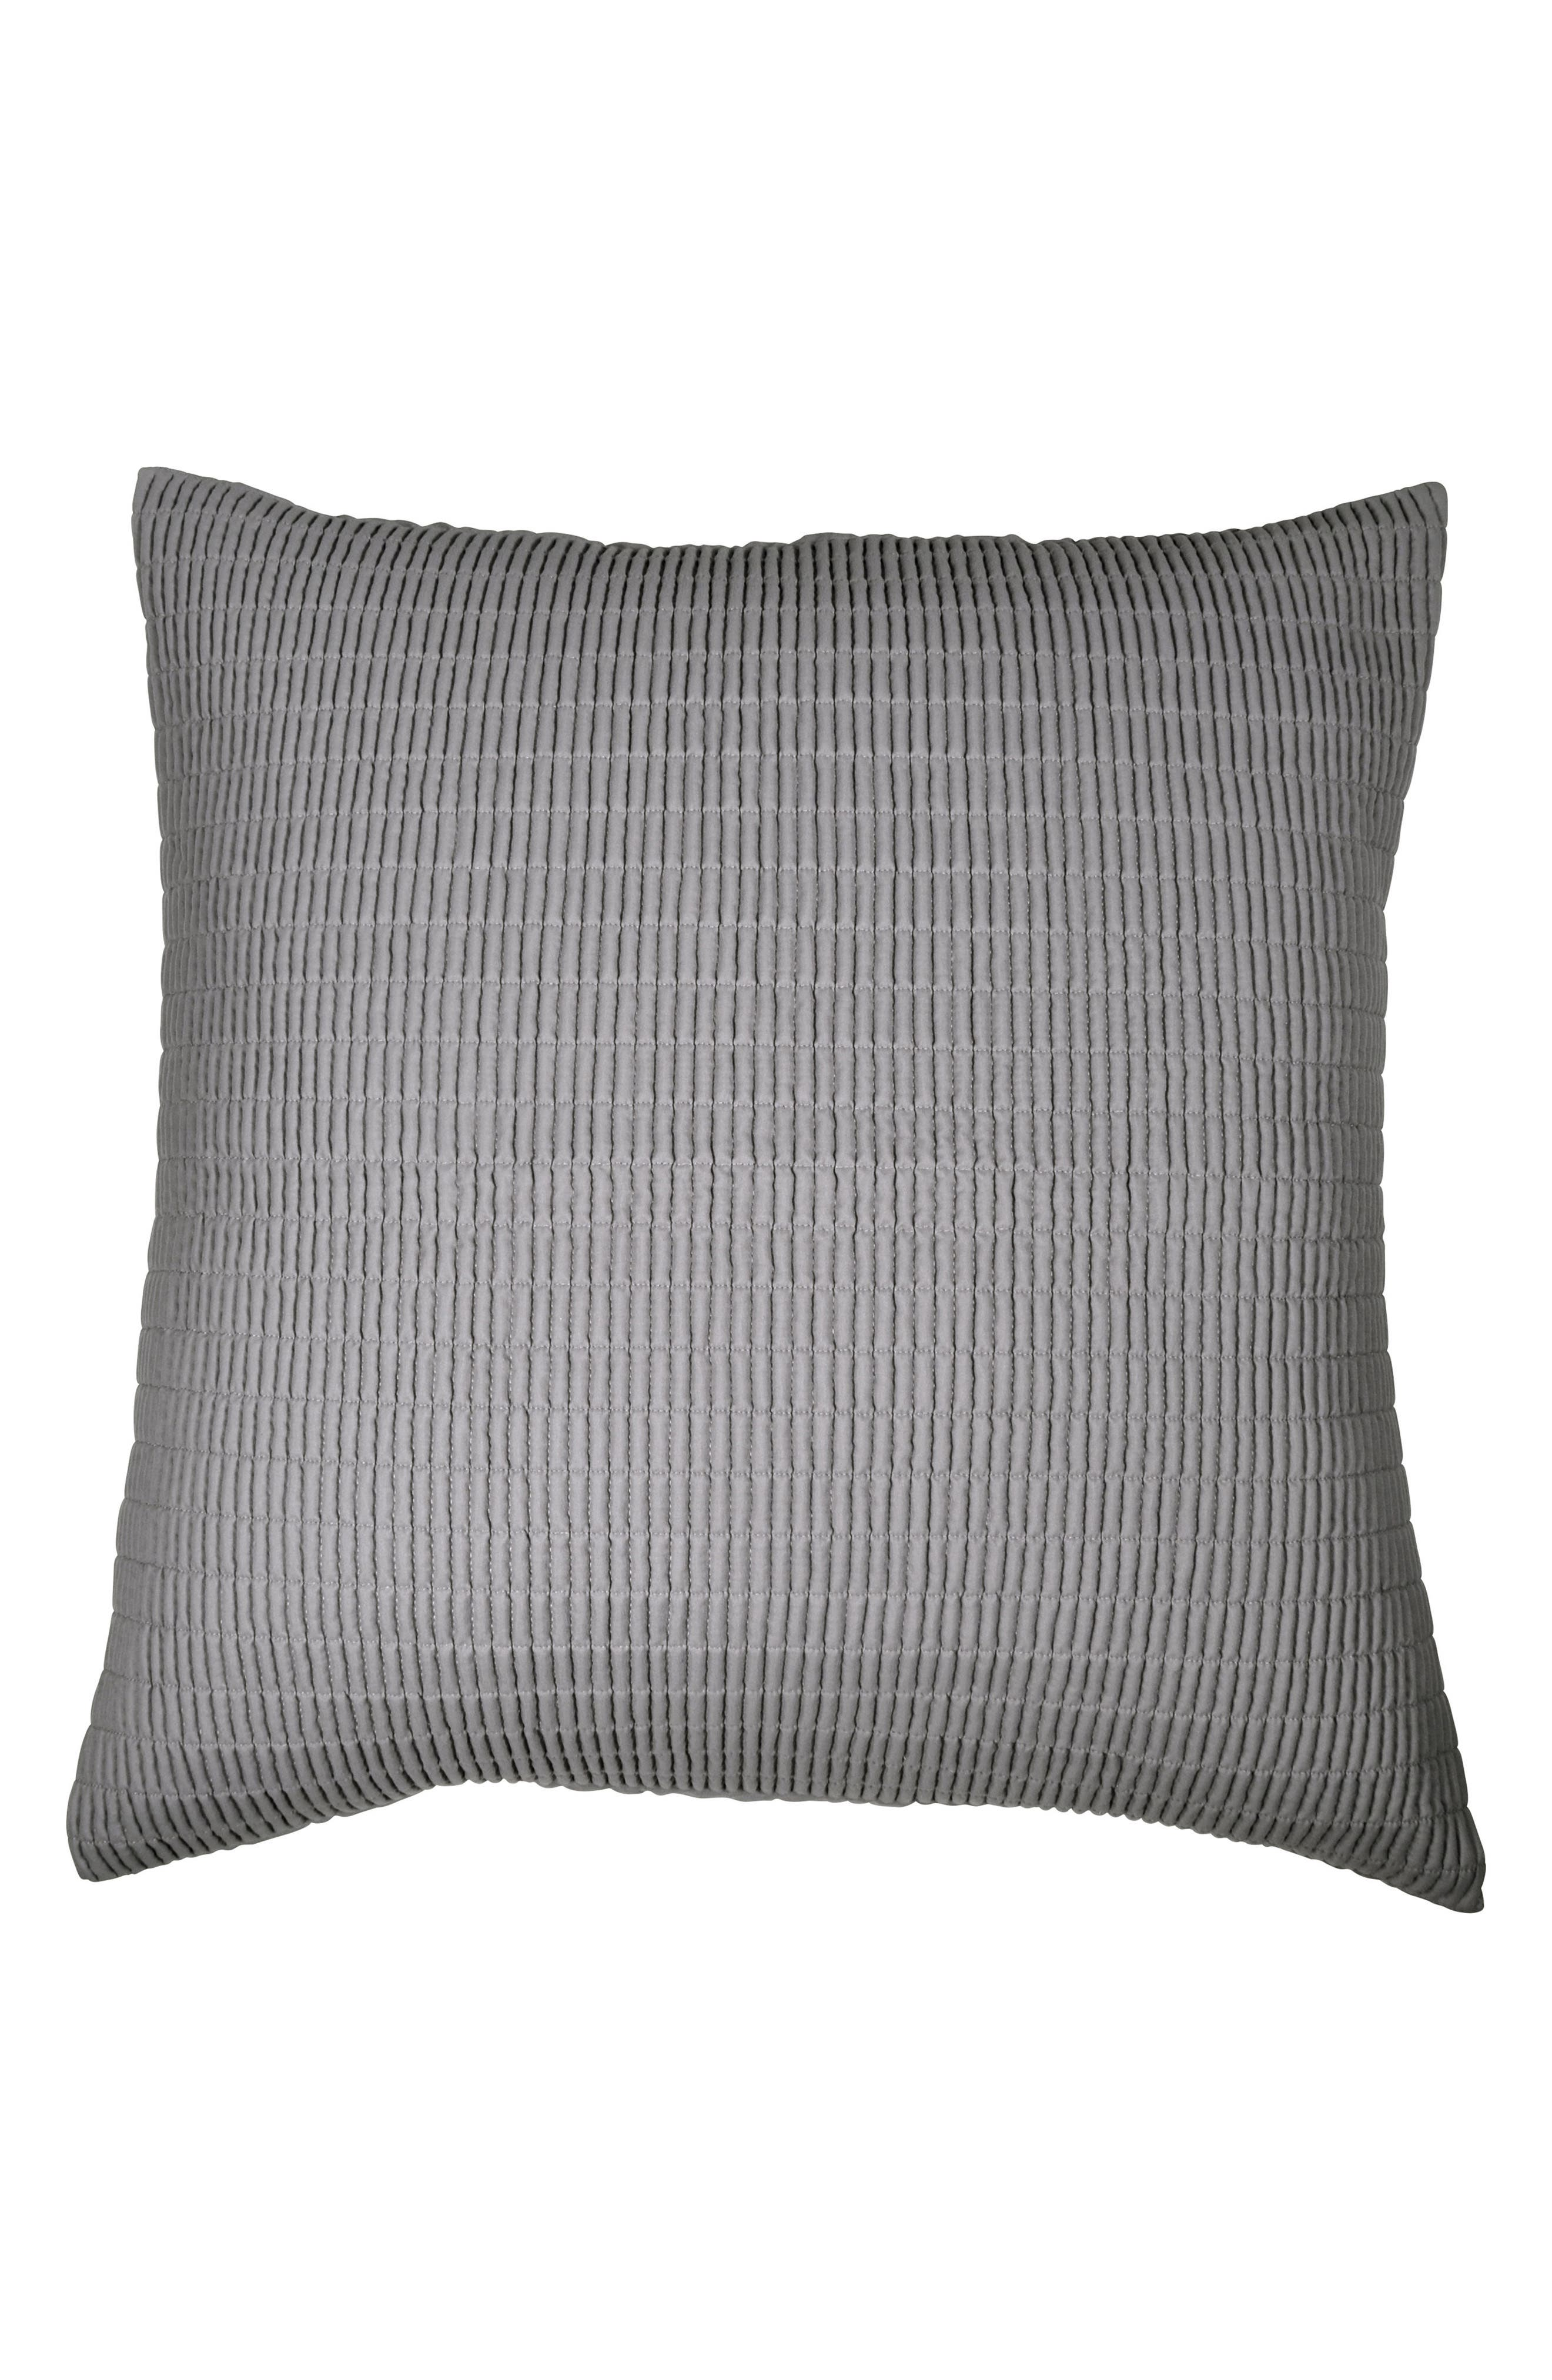 DKNY Quilted Sham, Main, color, GREY